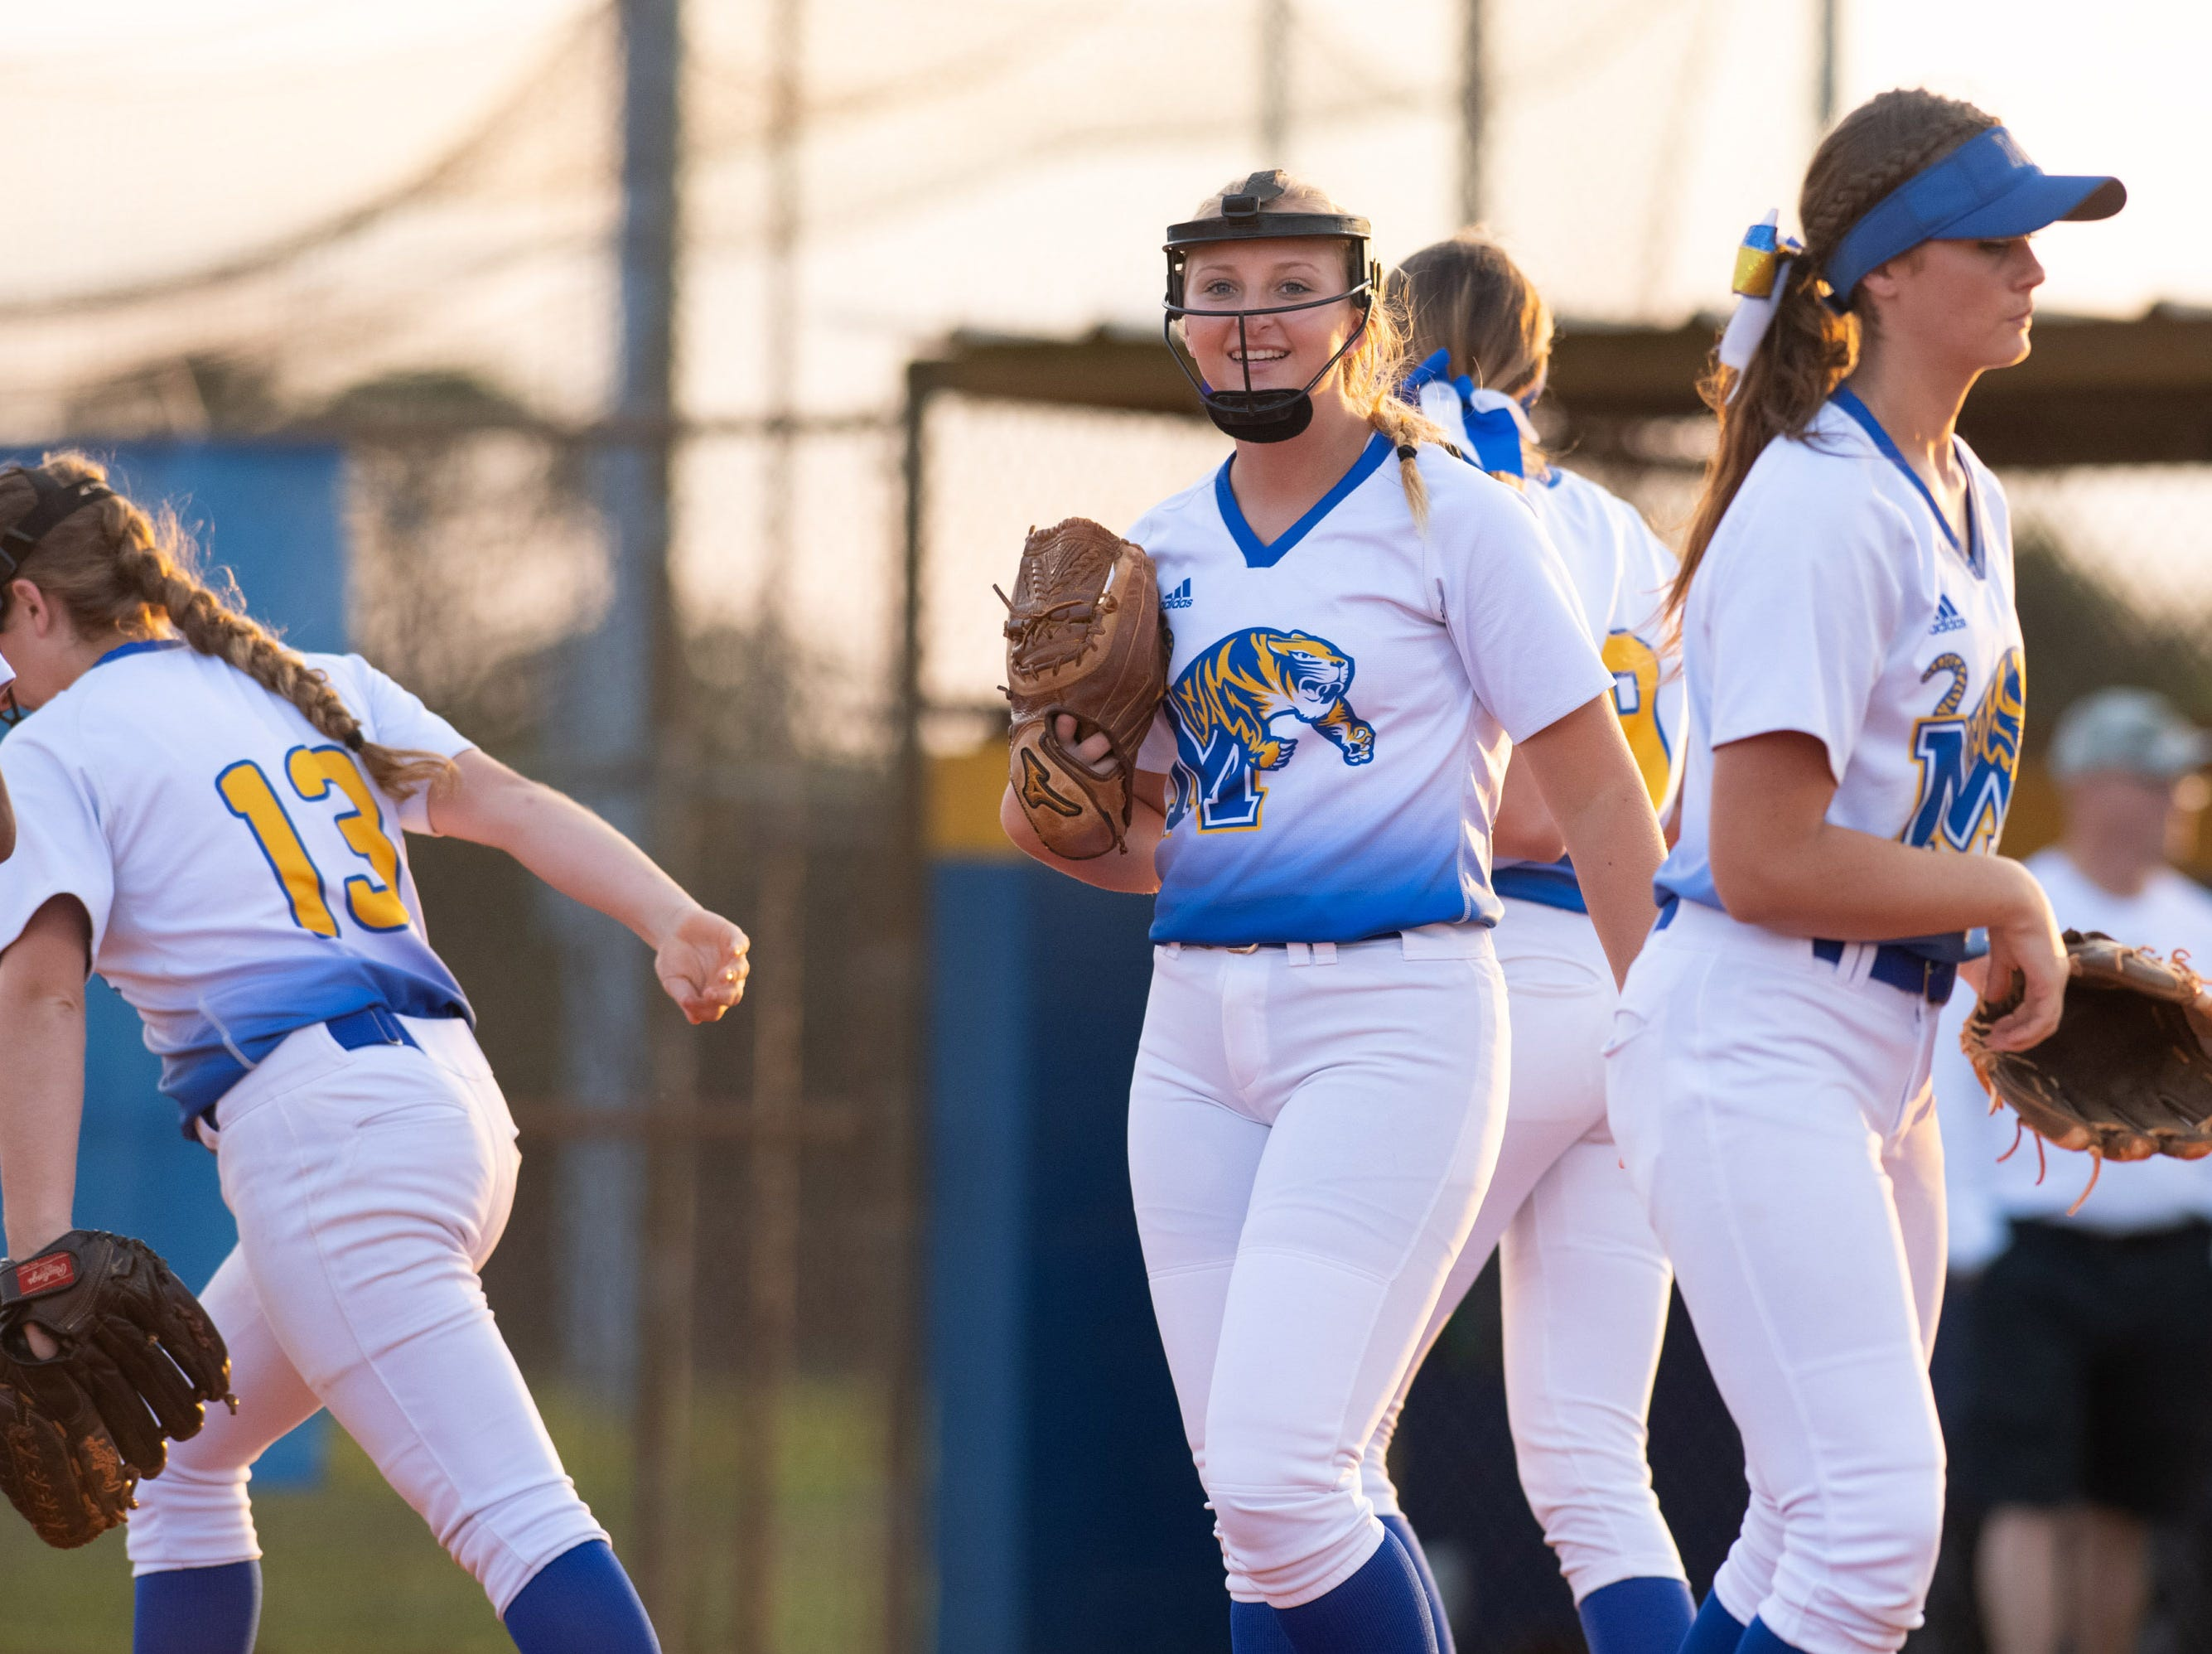 Martin County plays Jupiter during the high school softball game at Martin County High School on Friday, March 1, 2019, in Stuart.